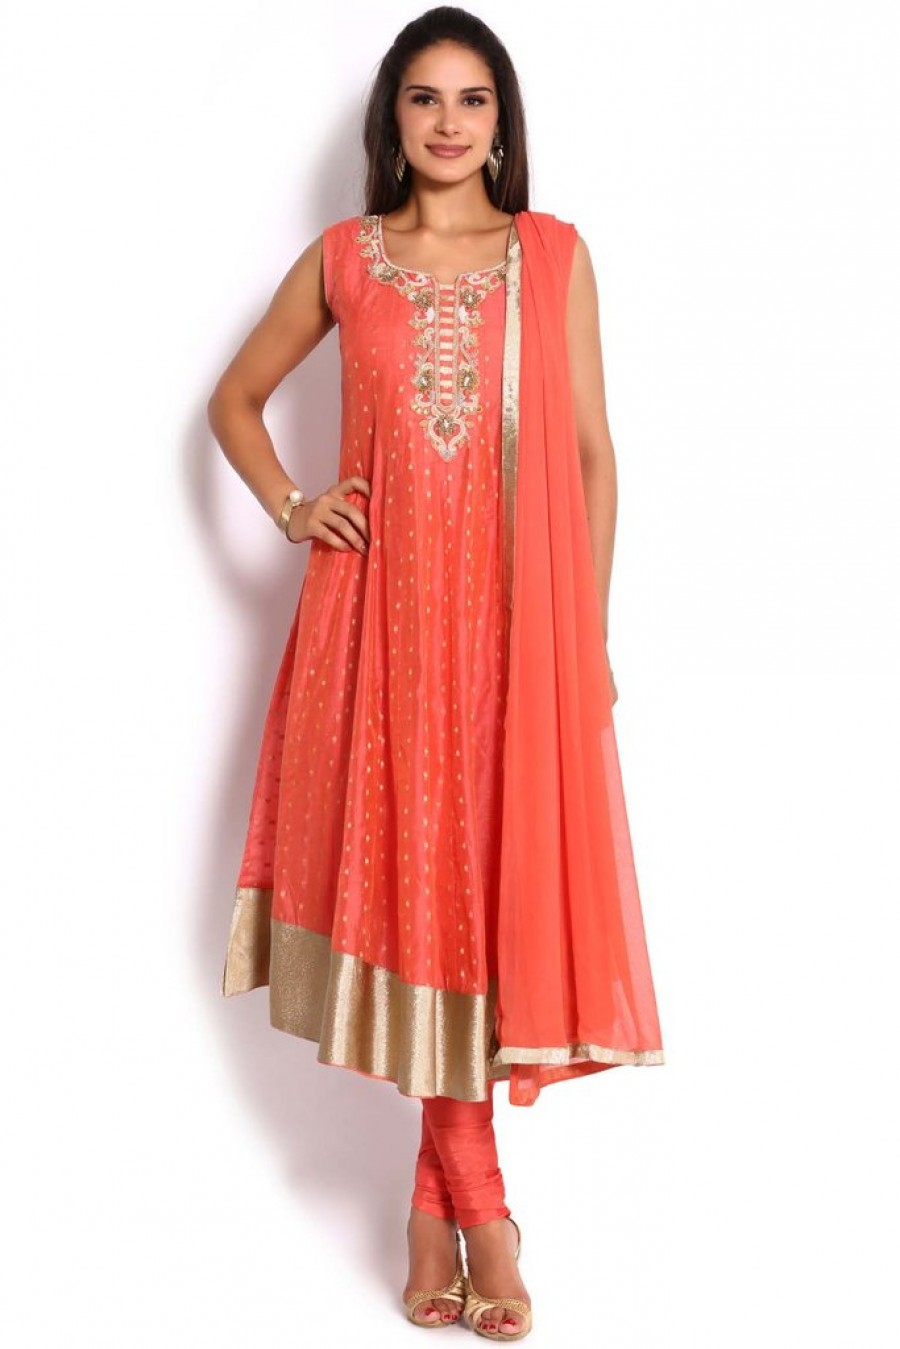 933c0cae62 Soch Peach & Gold Chanderi Anarkali Suit |Online Shopping | 530707